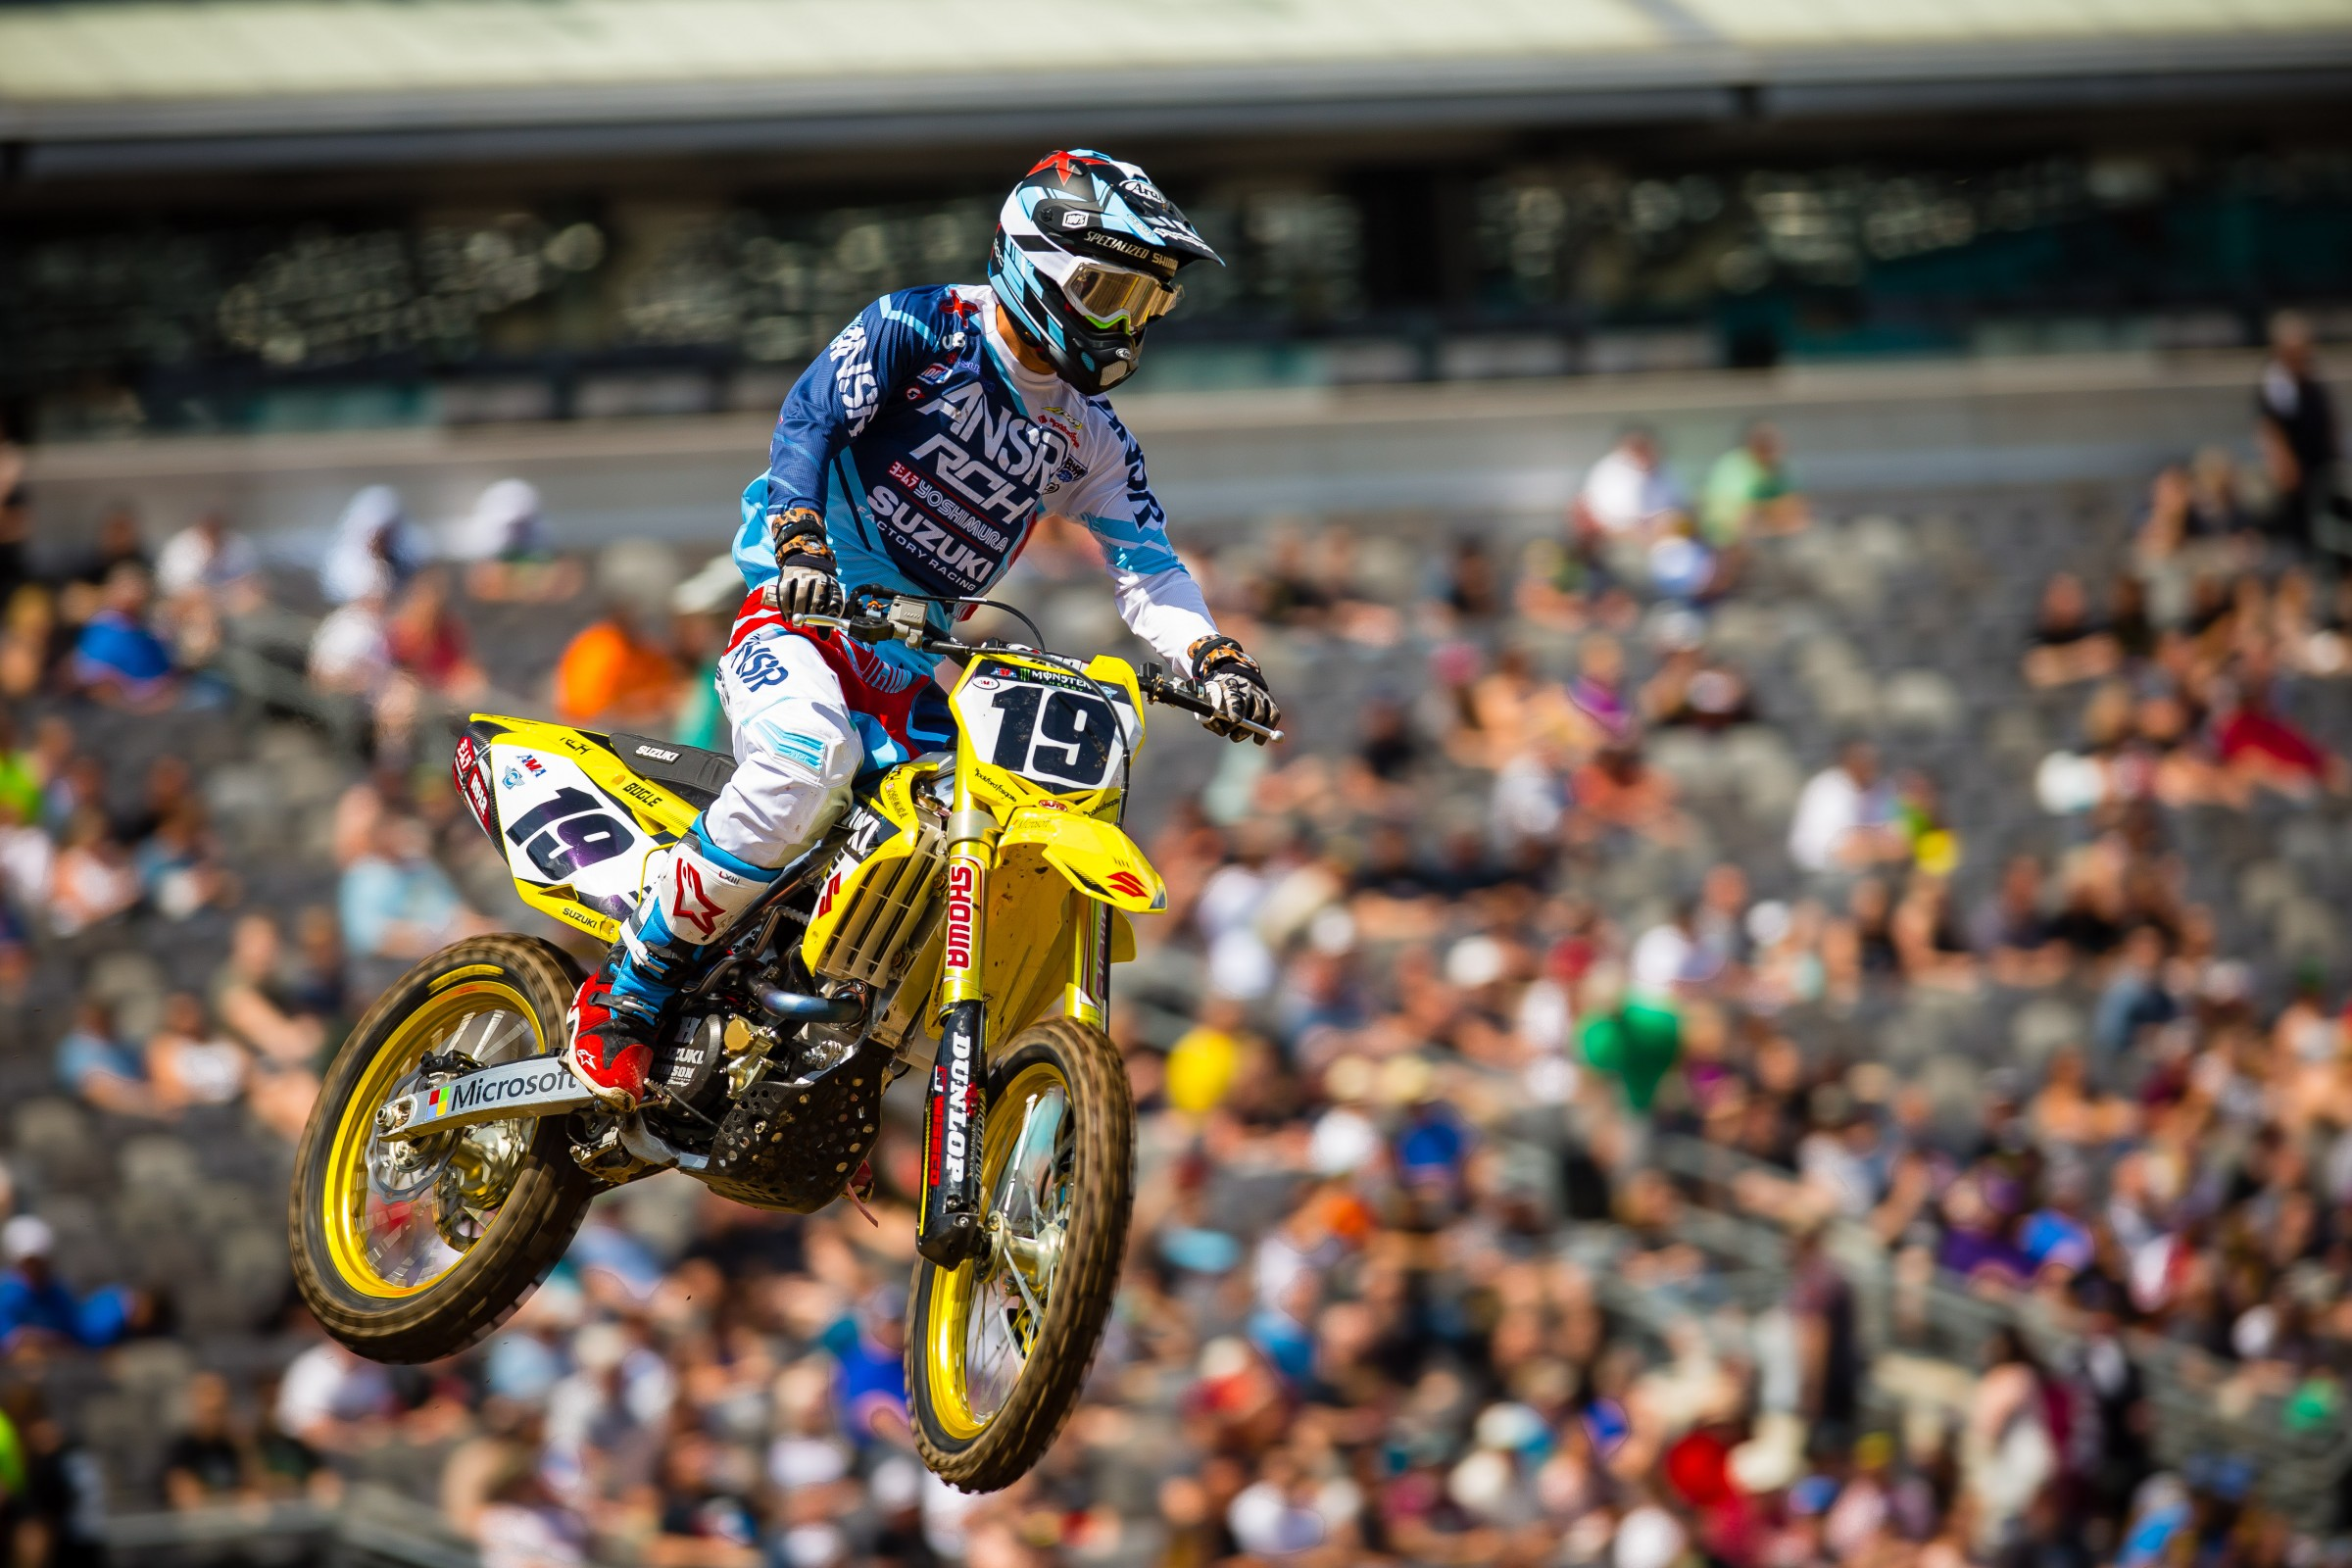 Bogle was unable to finish the day in East Rutherford due to soreness.